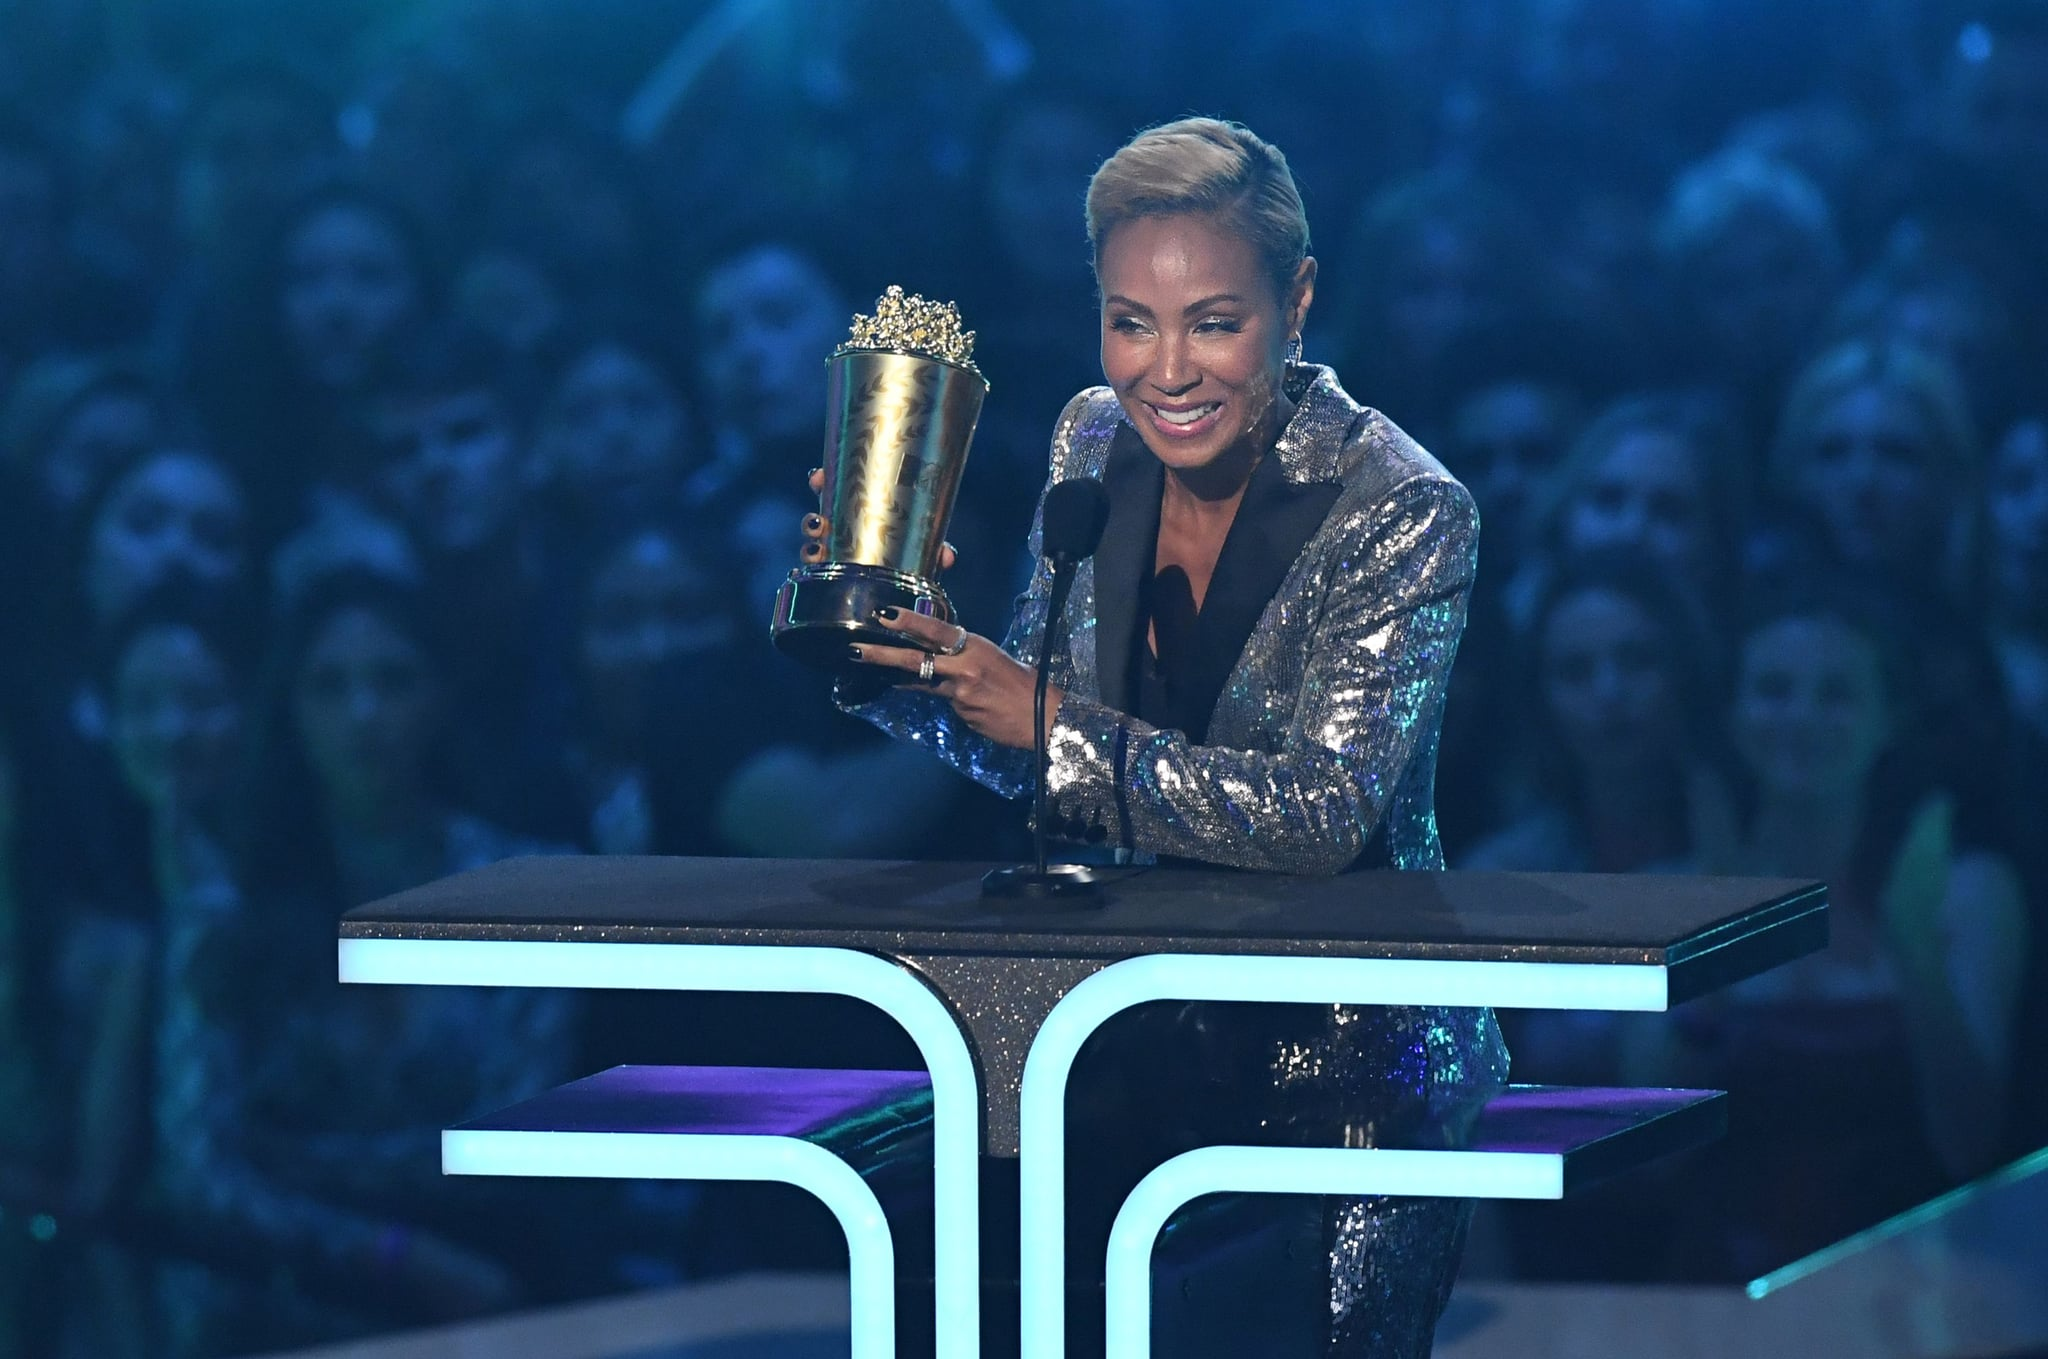 Jada Pinkett Smith's Empowering MTV Awards Speech Will Make Everyone Feel Like a Trailblazer